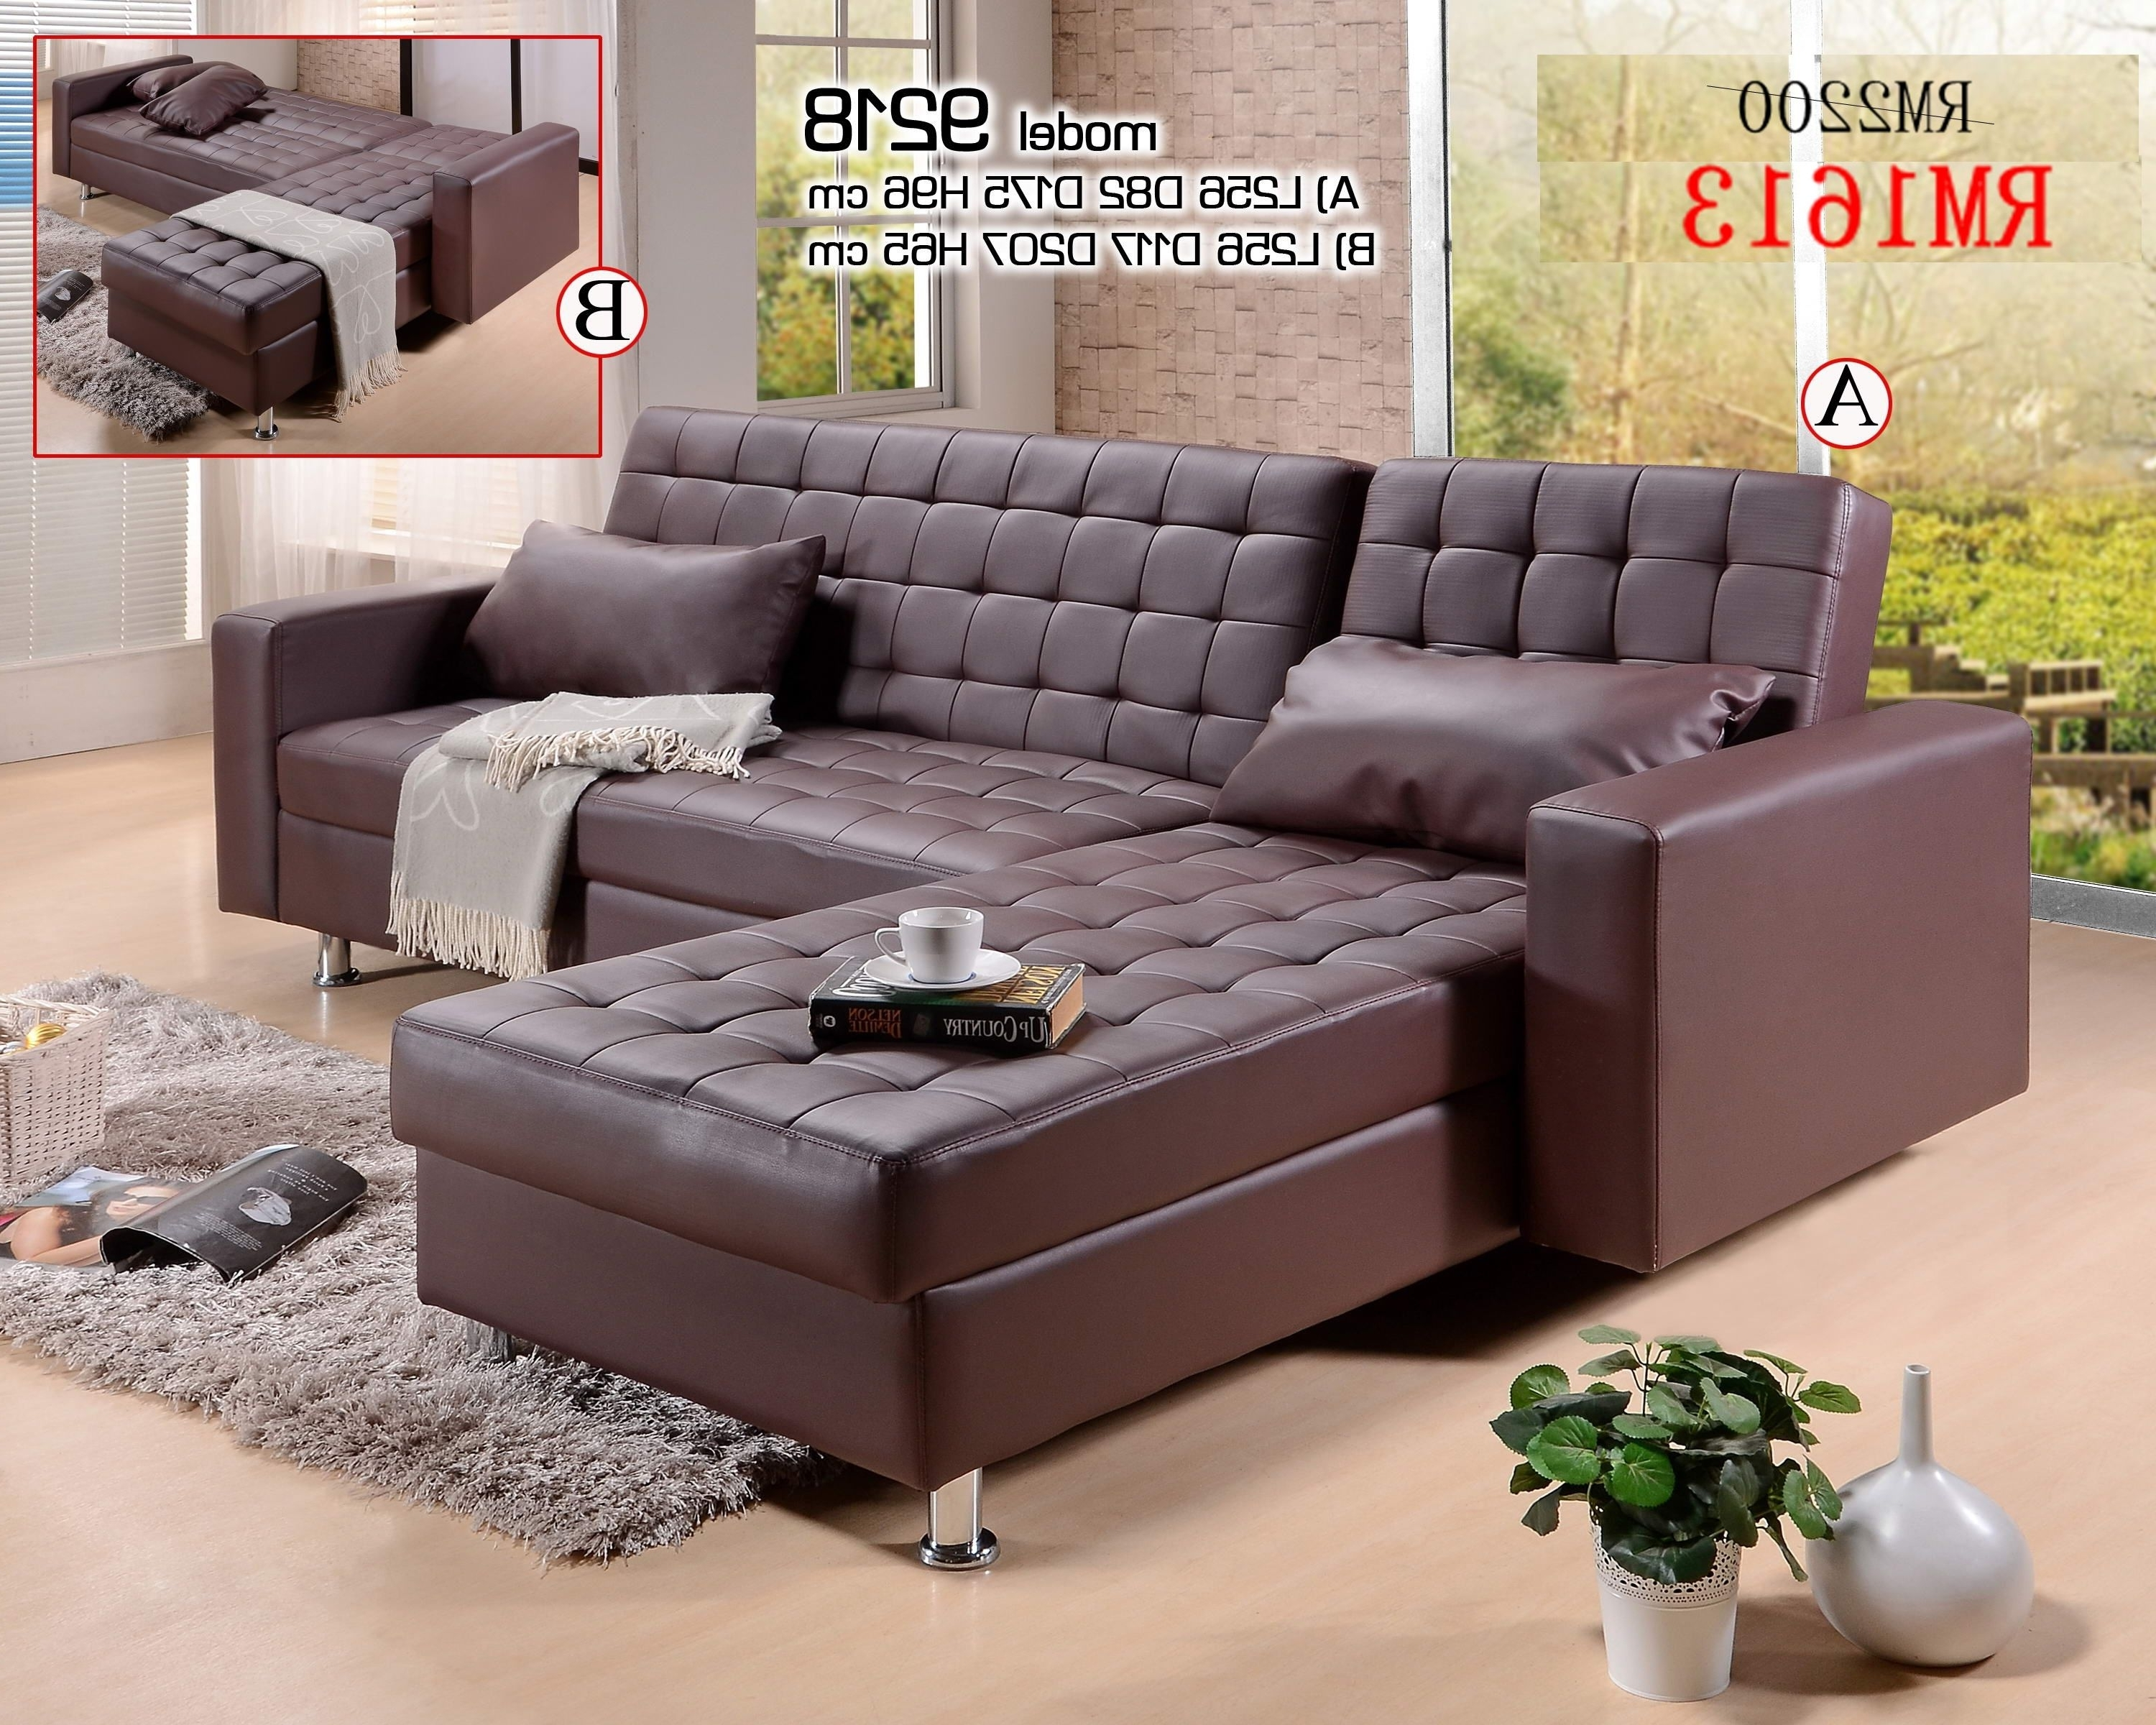 L Shaped Sofas Within Current L Shaped Sofa Bed, Sofa Bed Sale, Sofa Bed In Malaysia, Sofa Katil (View 9 of 20)